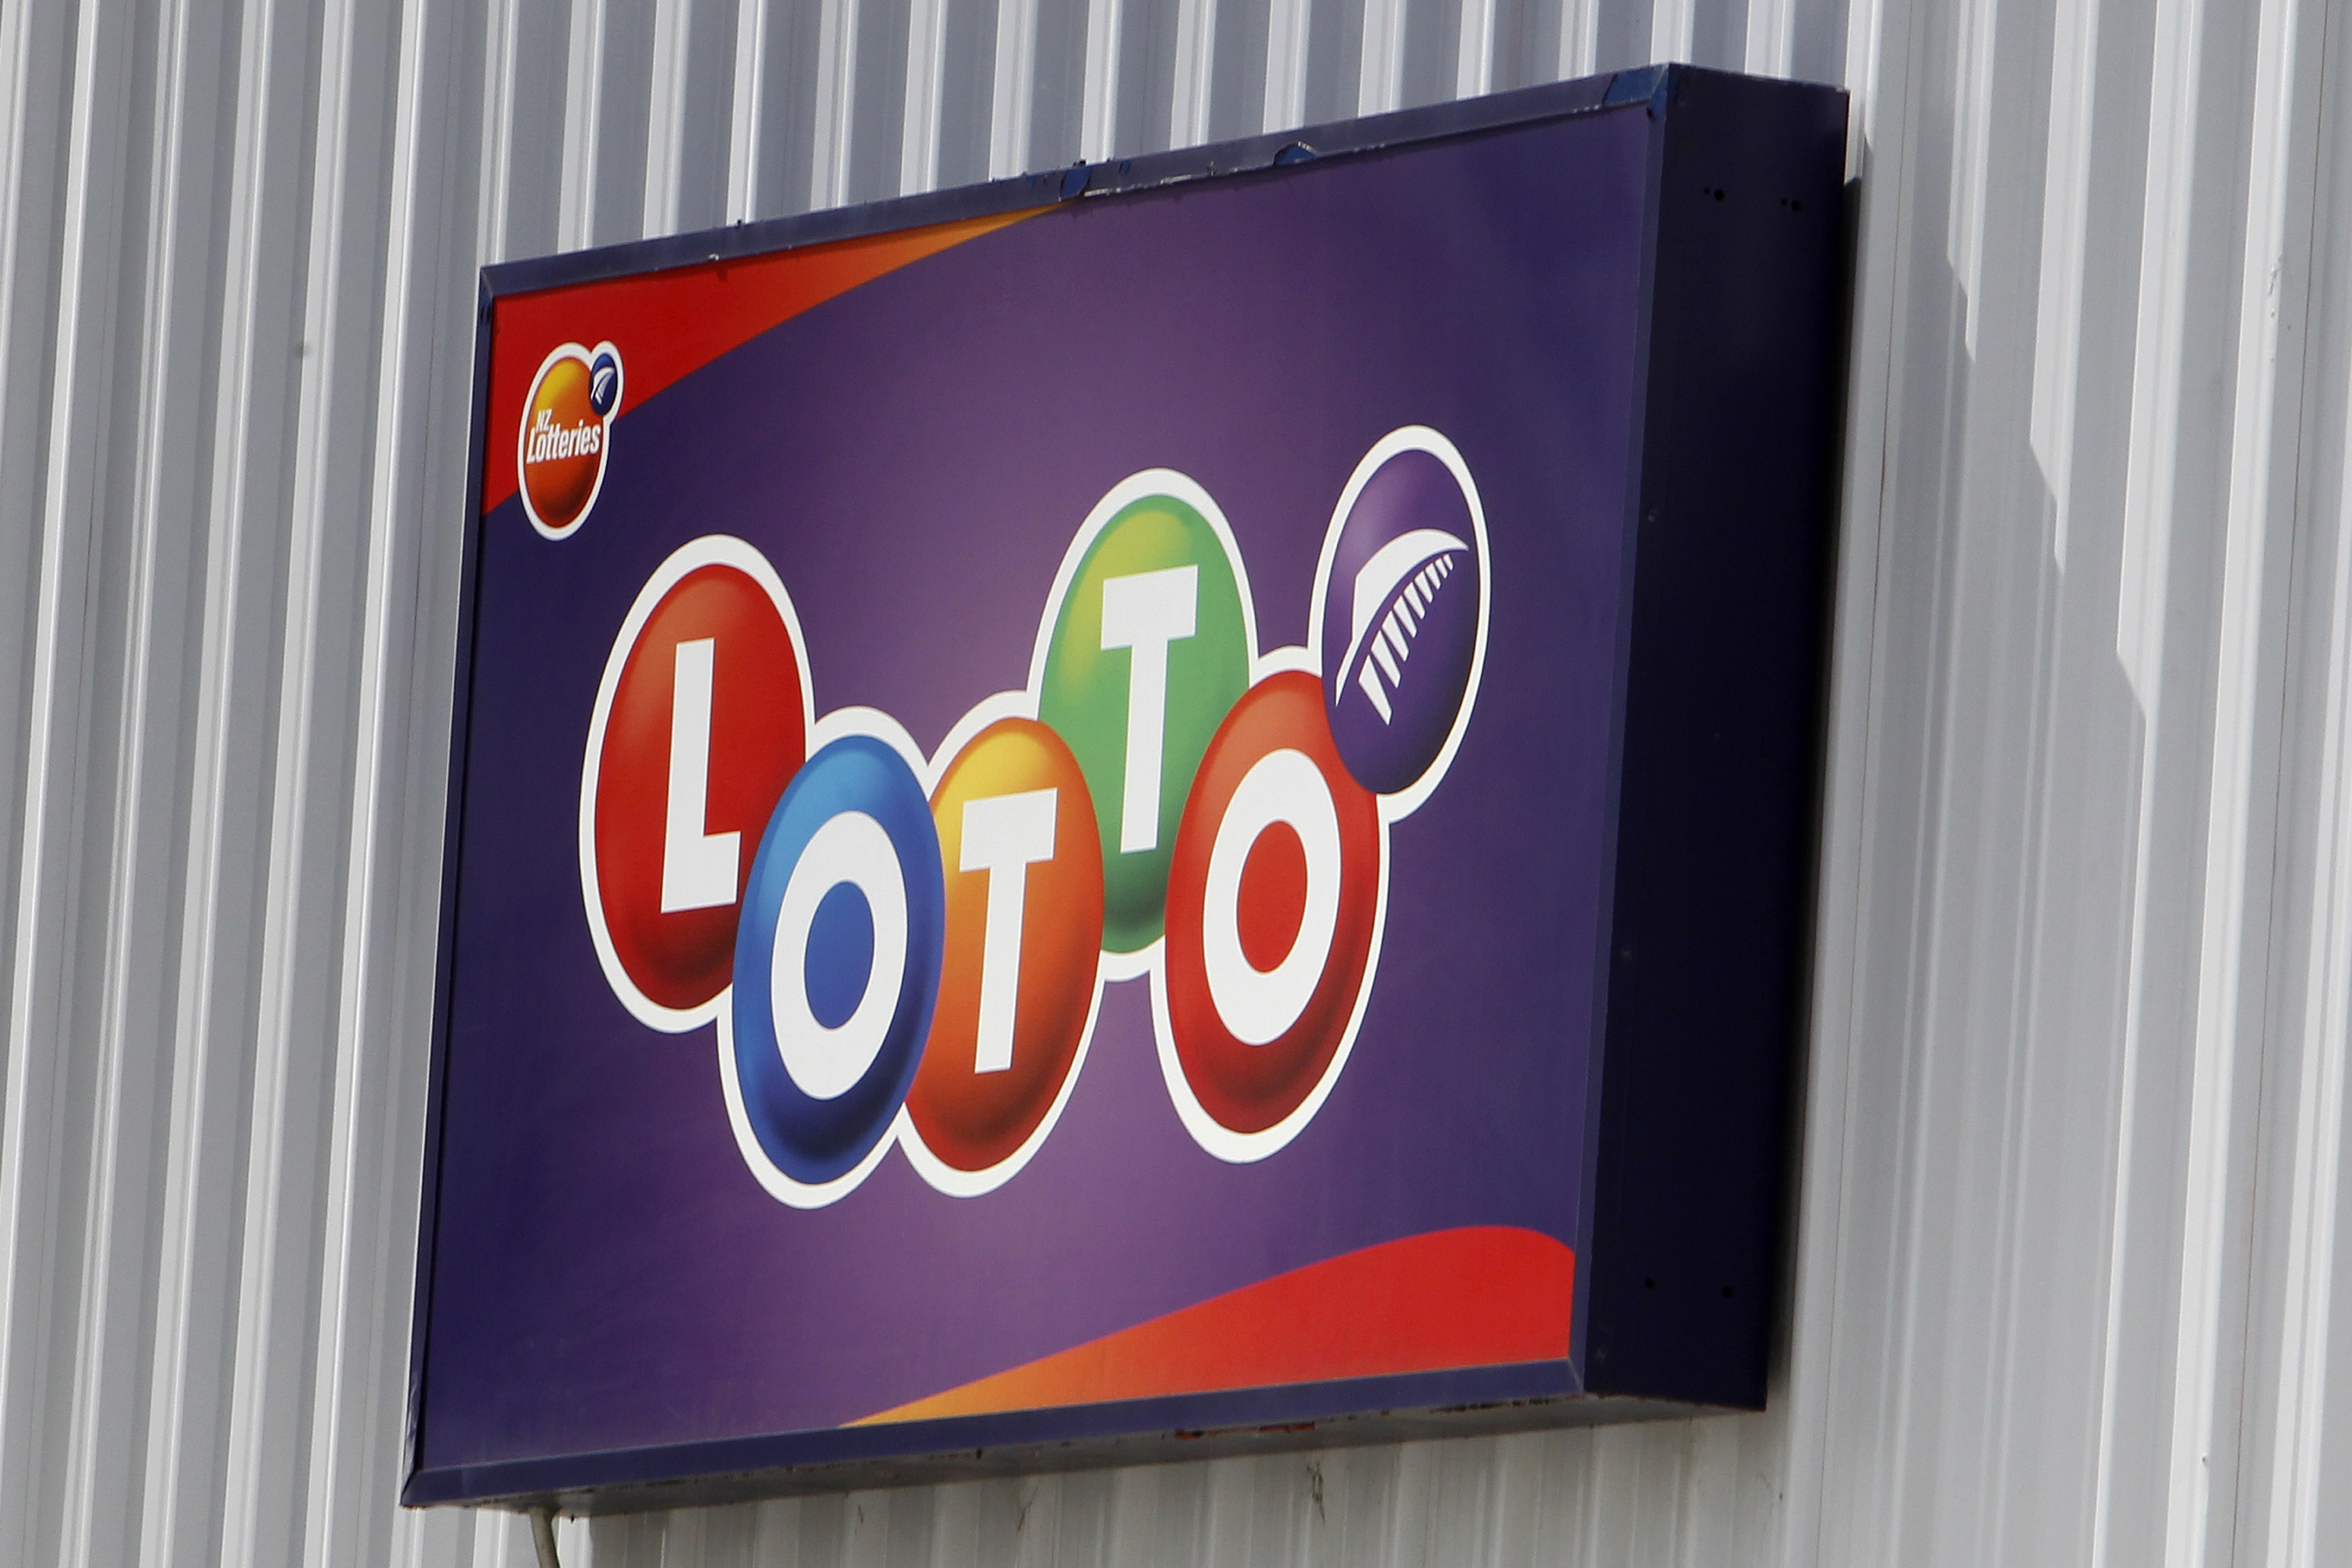 Five Lotto numbers prove very lucky - NZ Herald